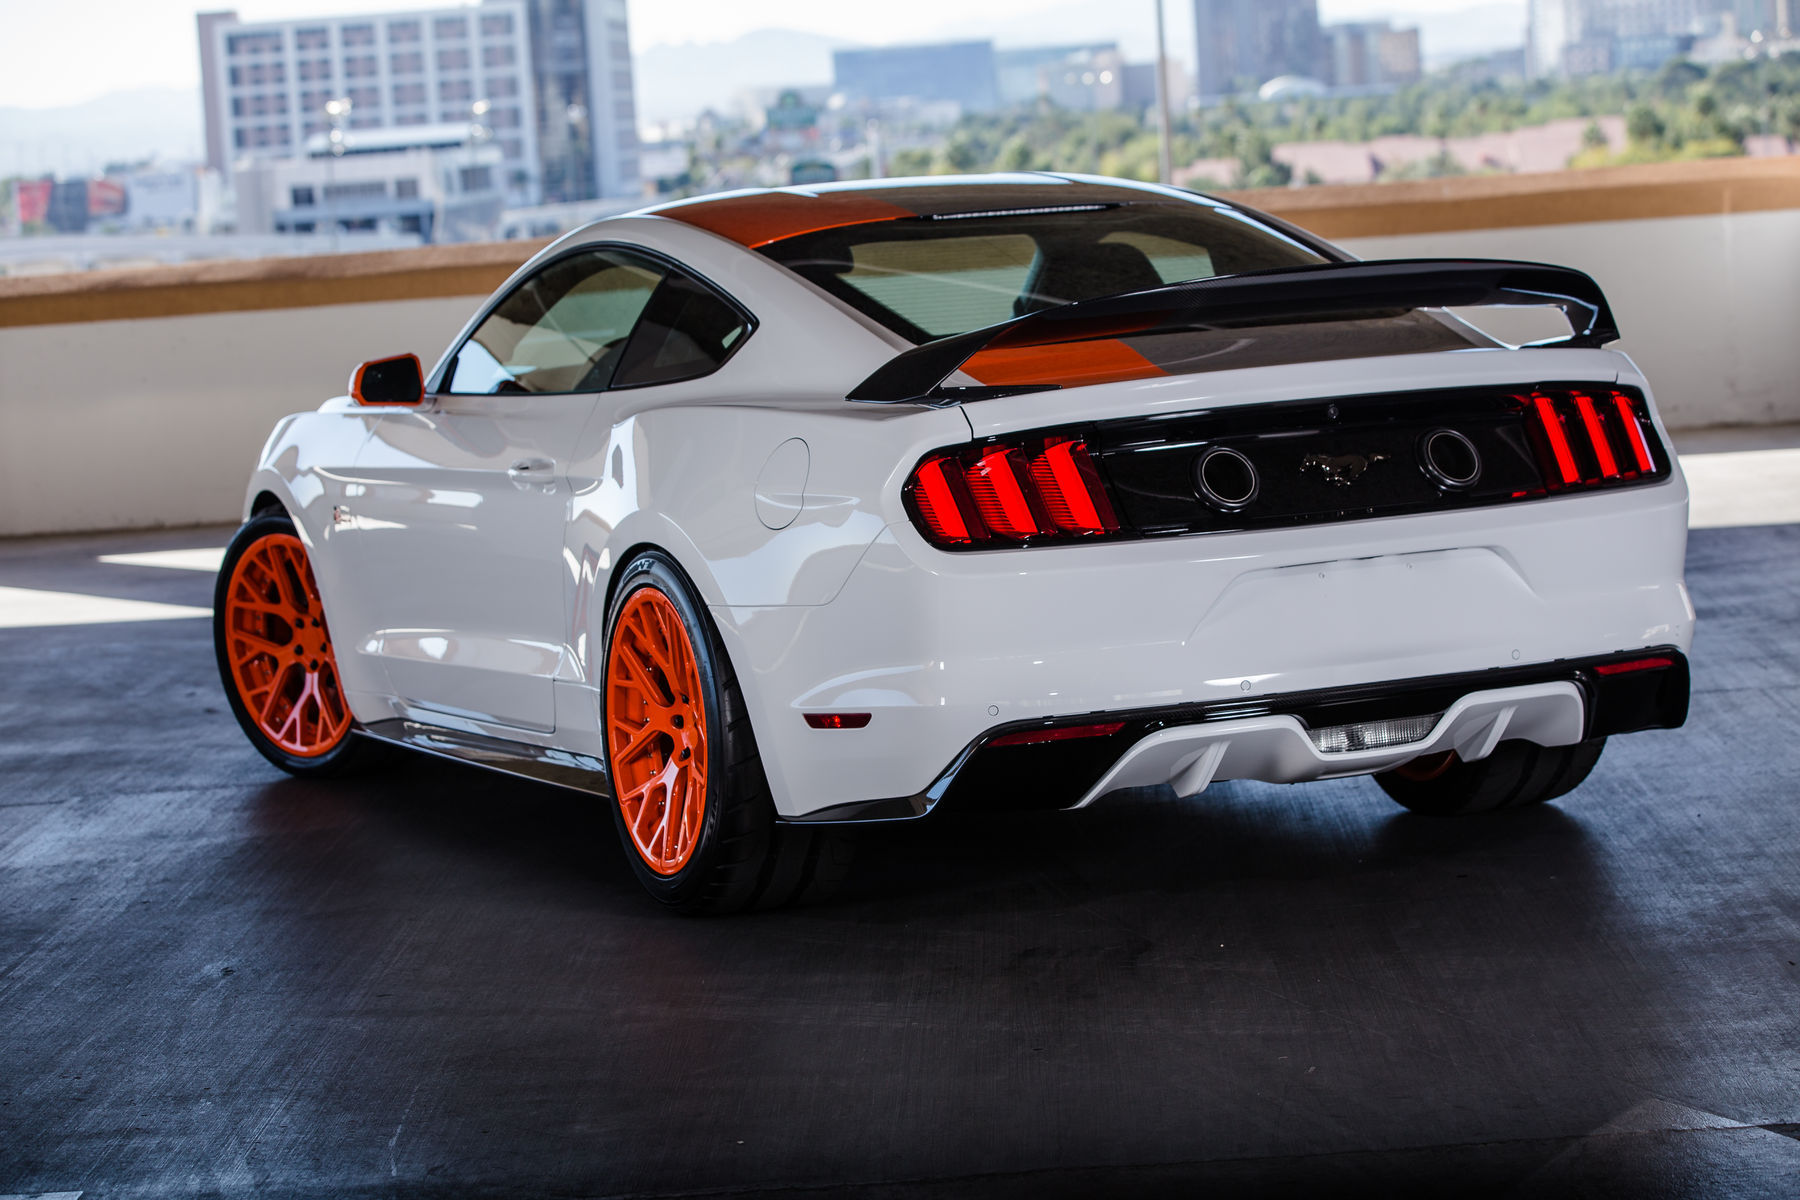 2015 Ford Mustang | 2015 Bojix Ford Mustang - Exhaust